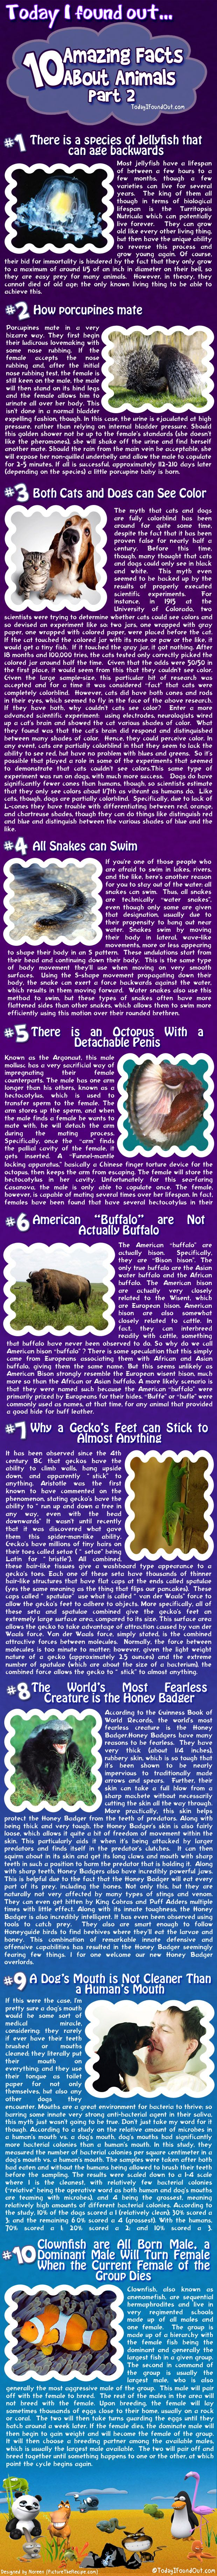 Animal Facts Infographic http://on.fb.me/LHKq17